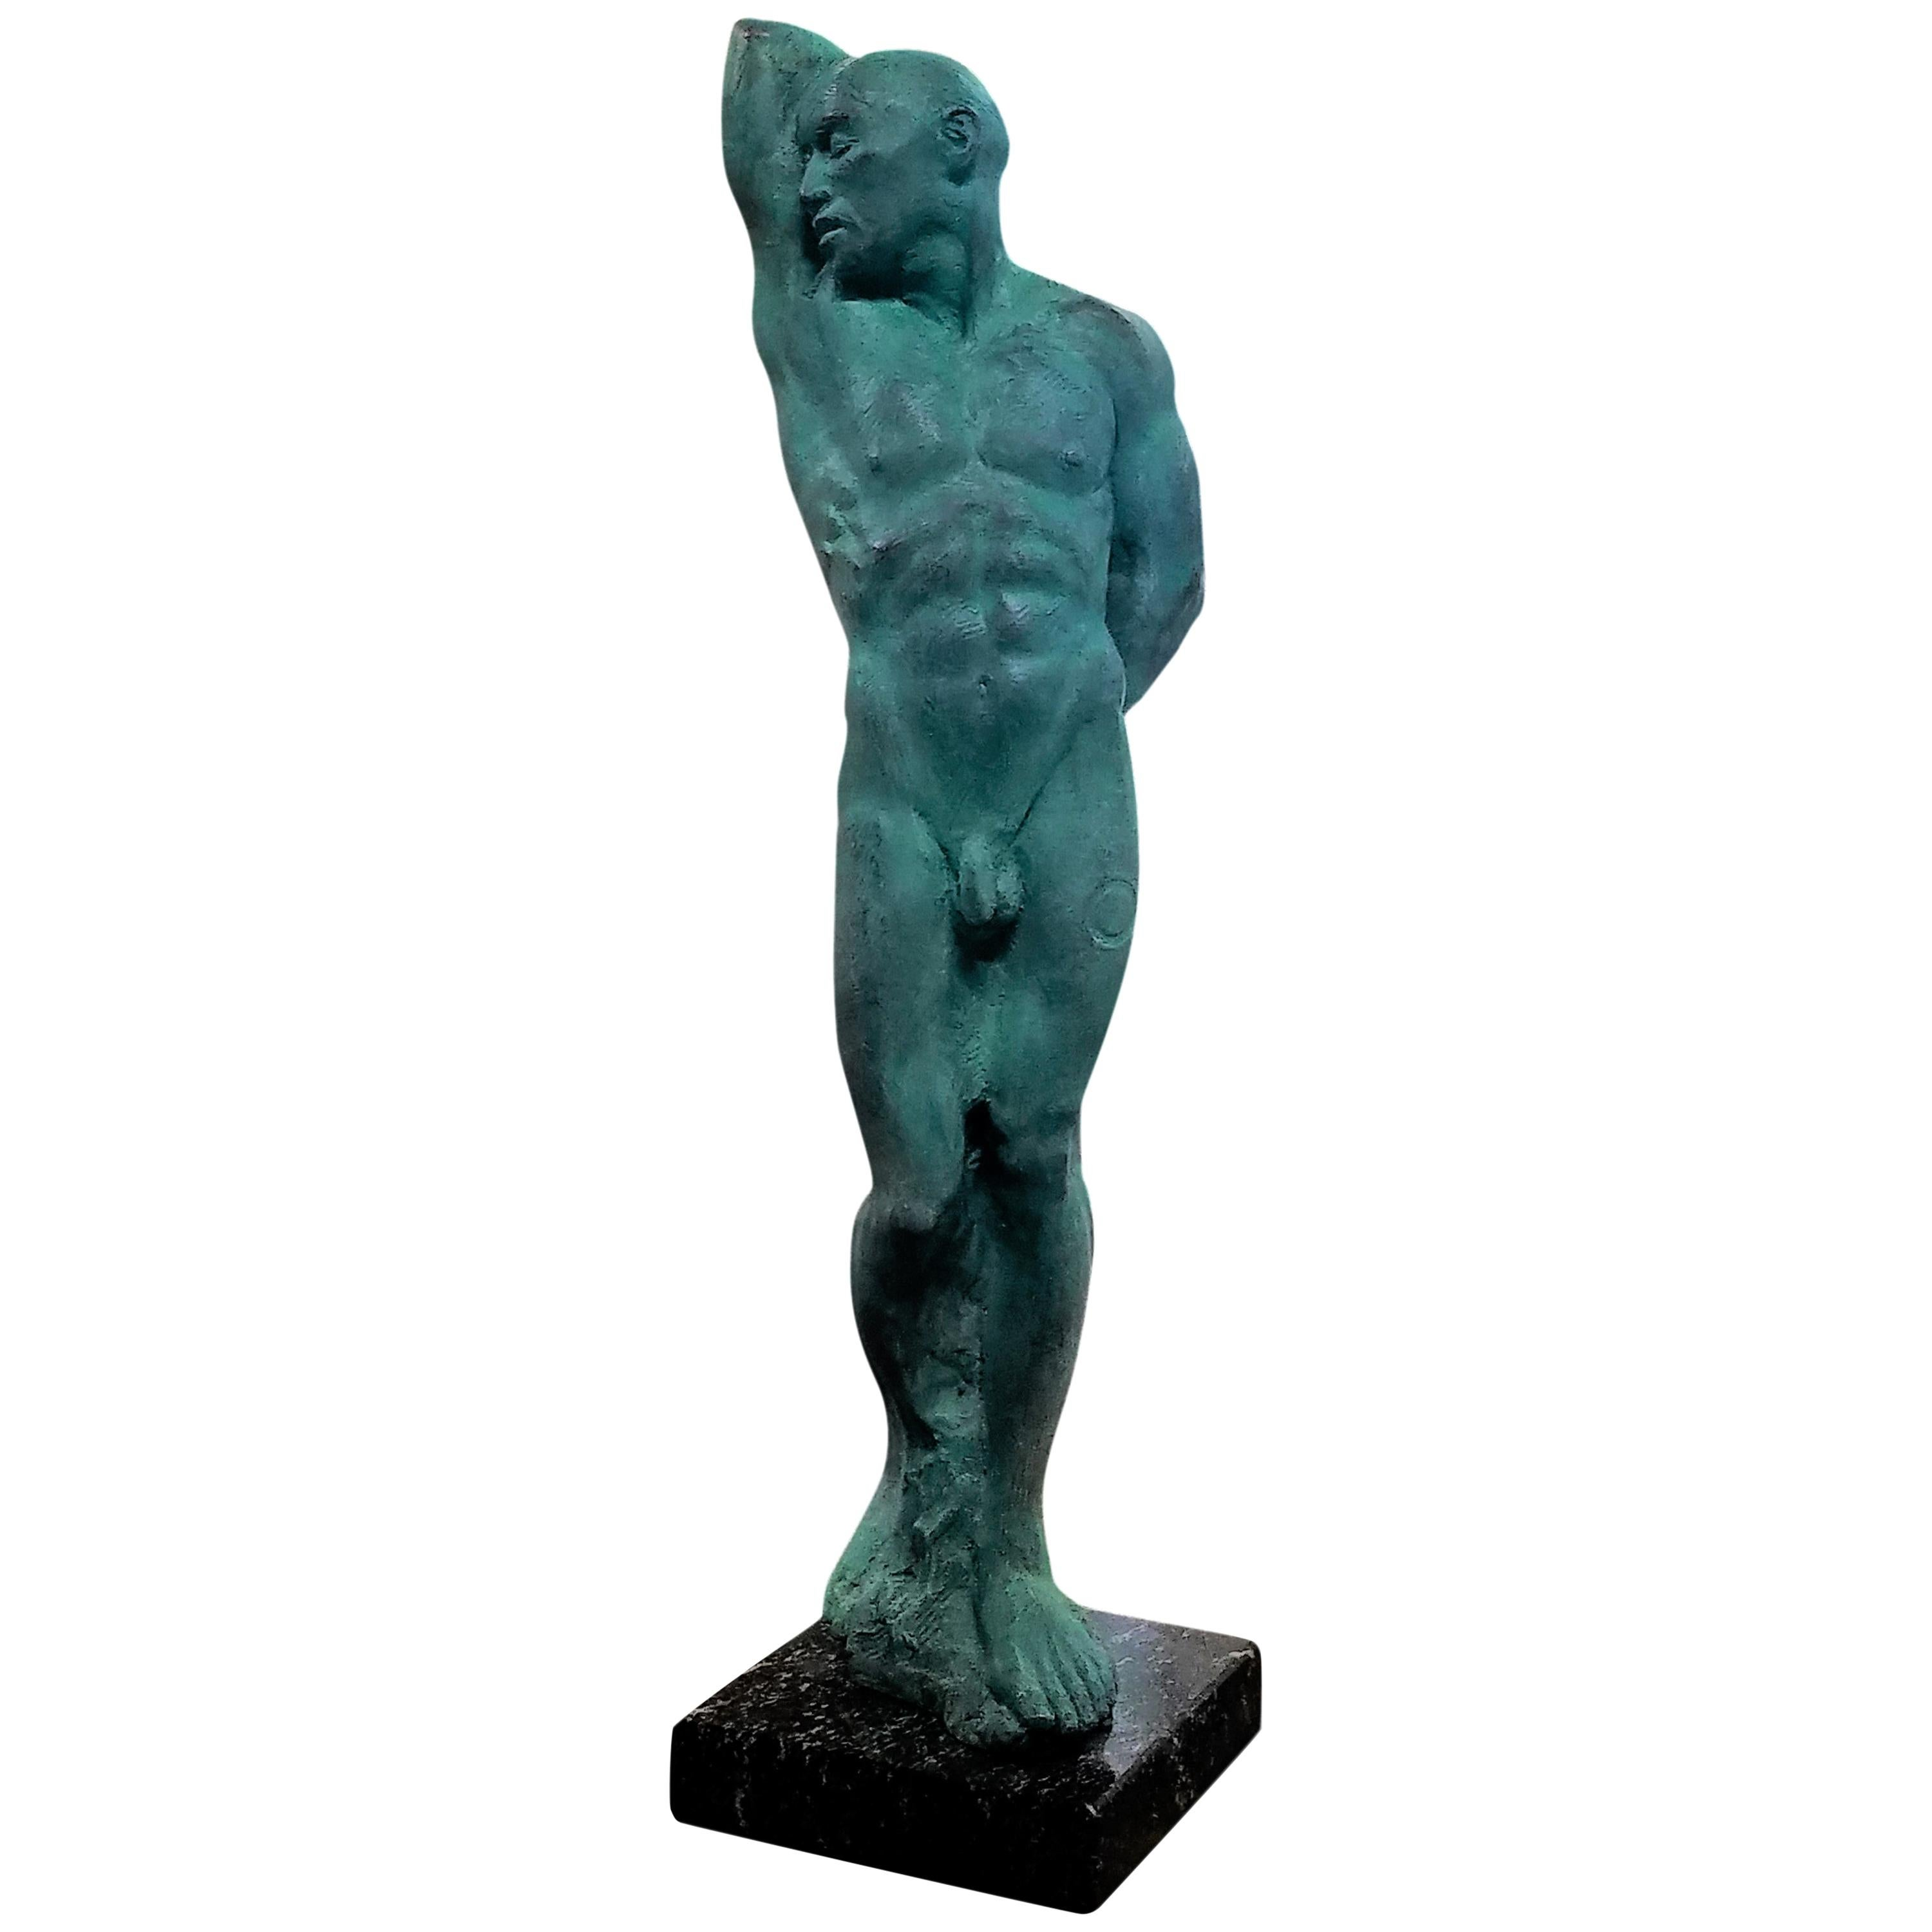 After Michelangelo's Slave Series Classical Male Nude Bronze, Green Patina